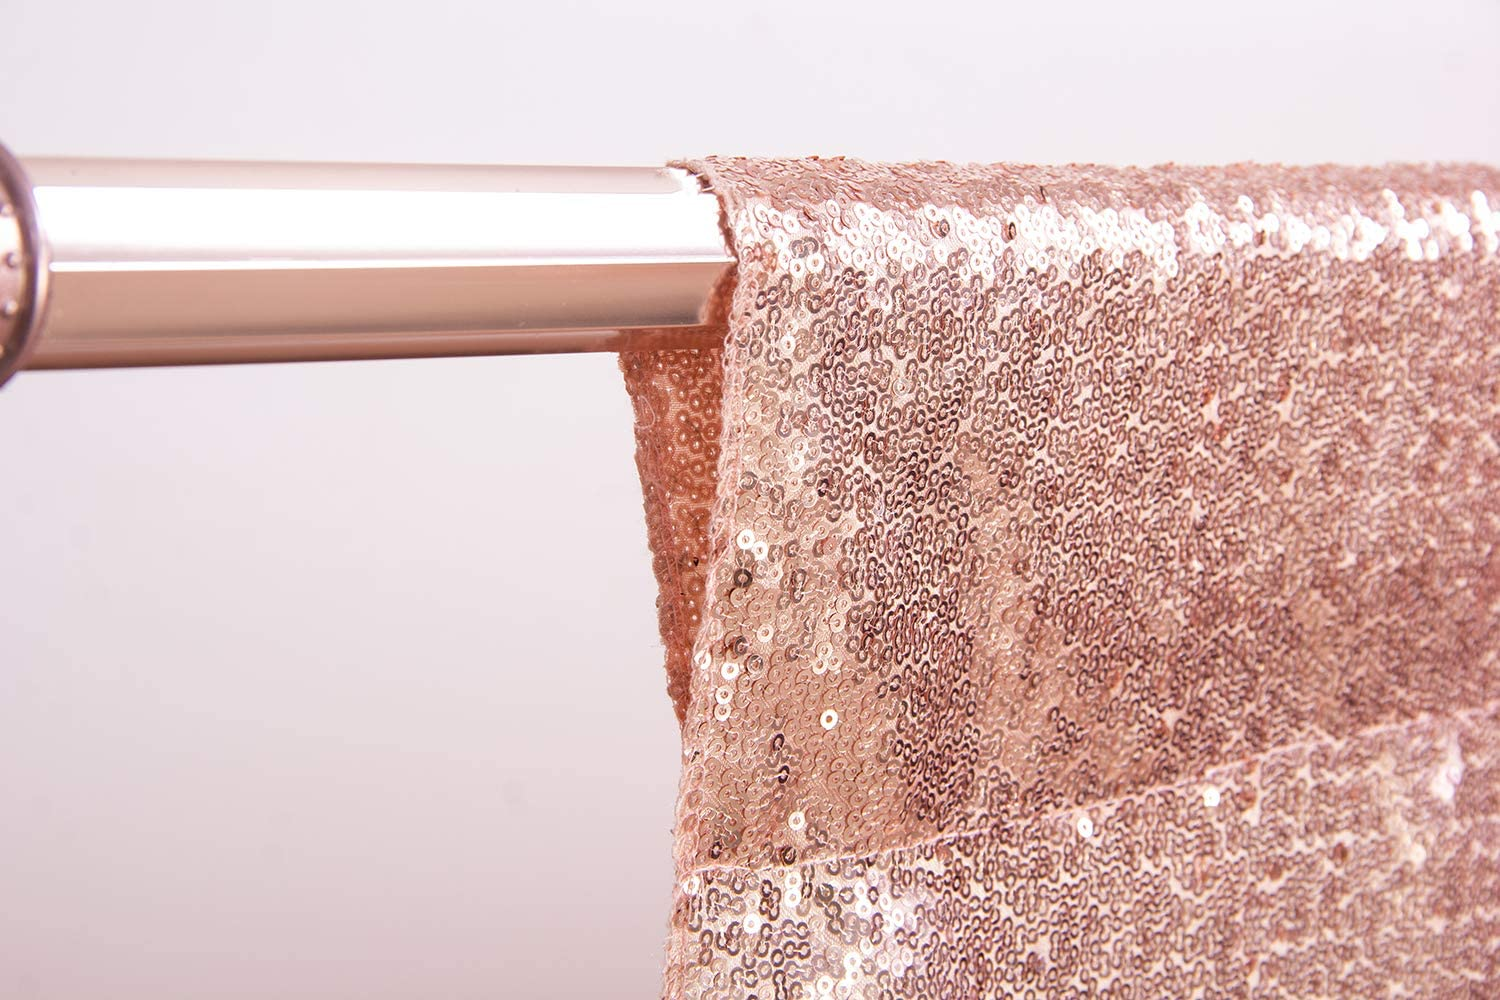 Birthday 4Ft x 6Ft, Rose Gold Baby Bridal Shower. Party Delight 4Ft X 6Ft Rose Gold Non-Transparent Sparkling Satin Sequin Backdrop Curtain for Photography and Photo Booth